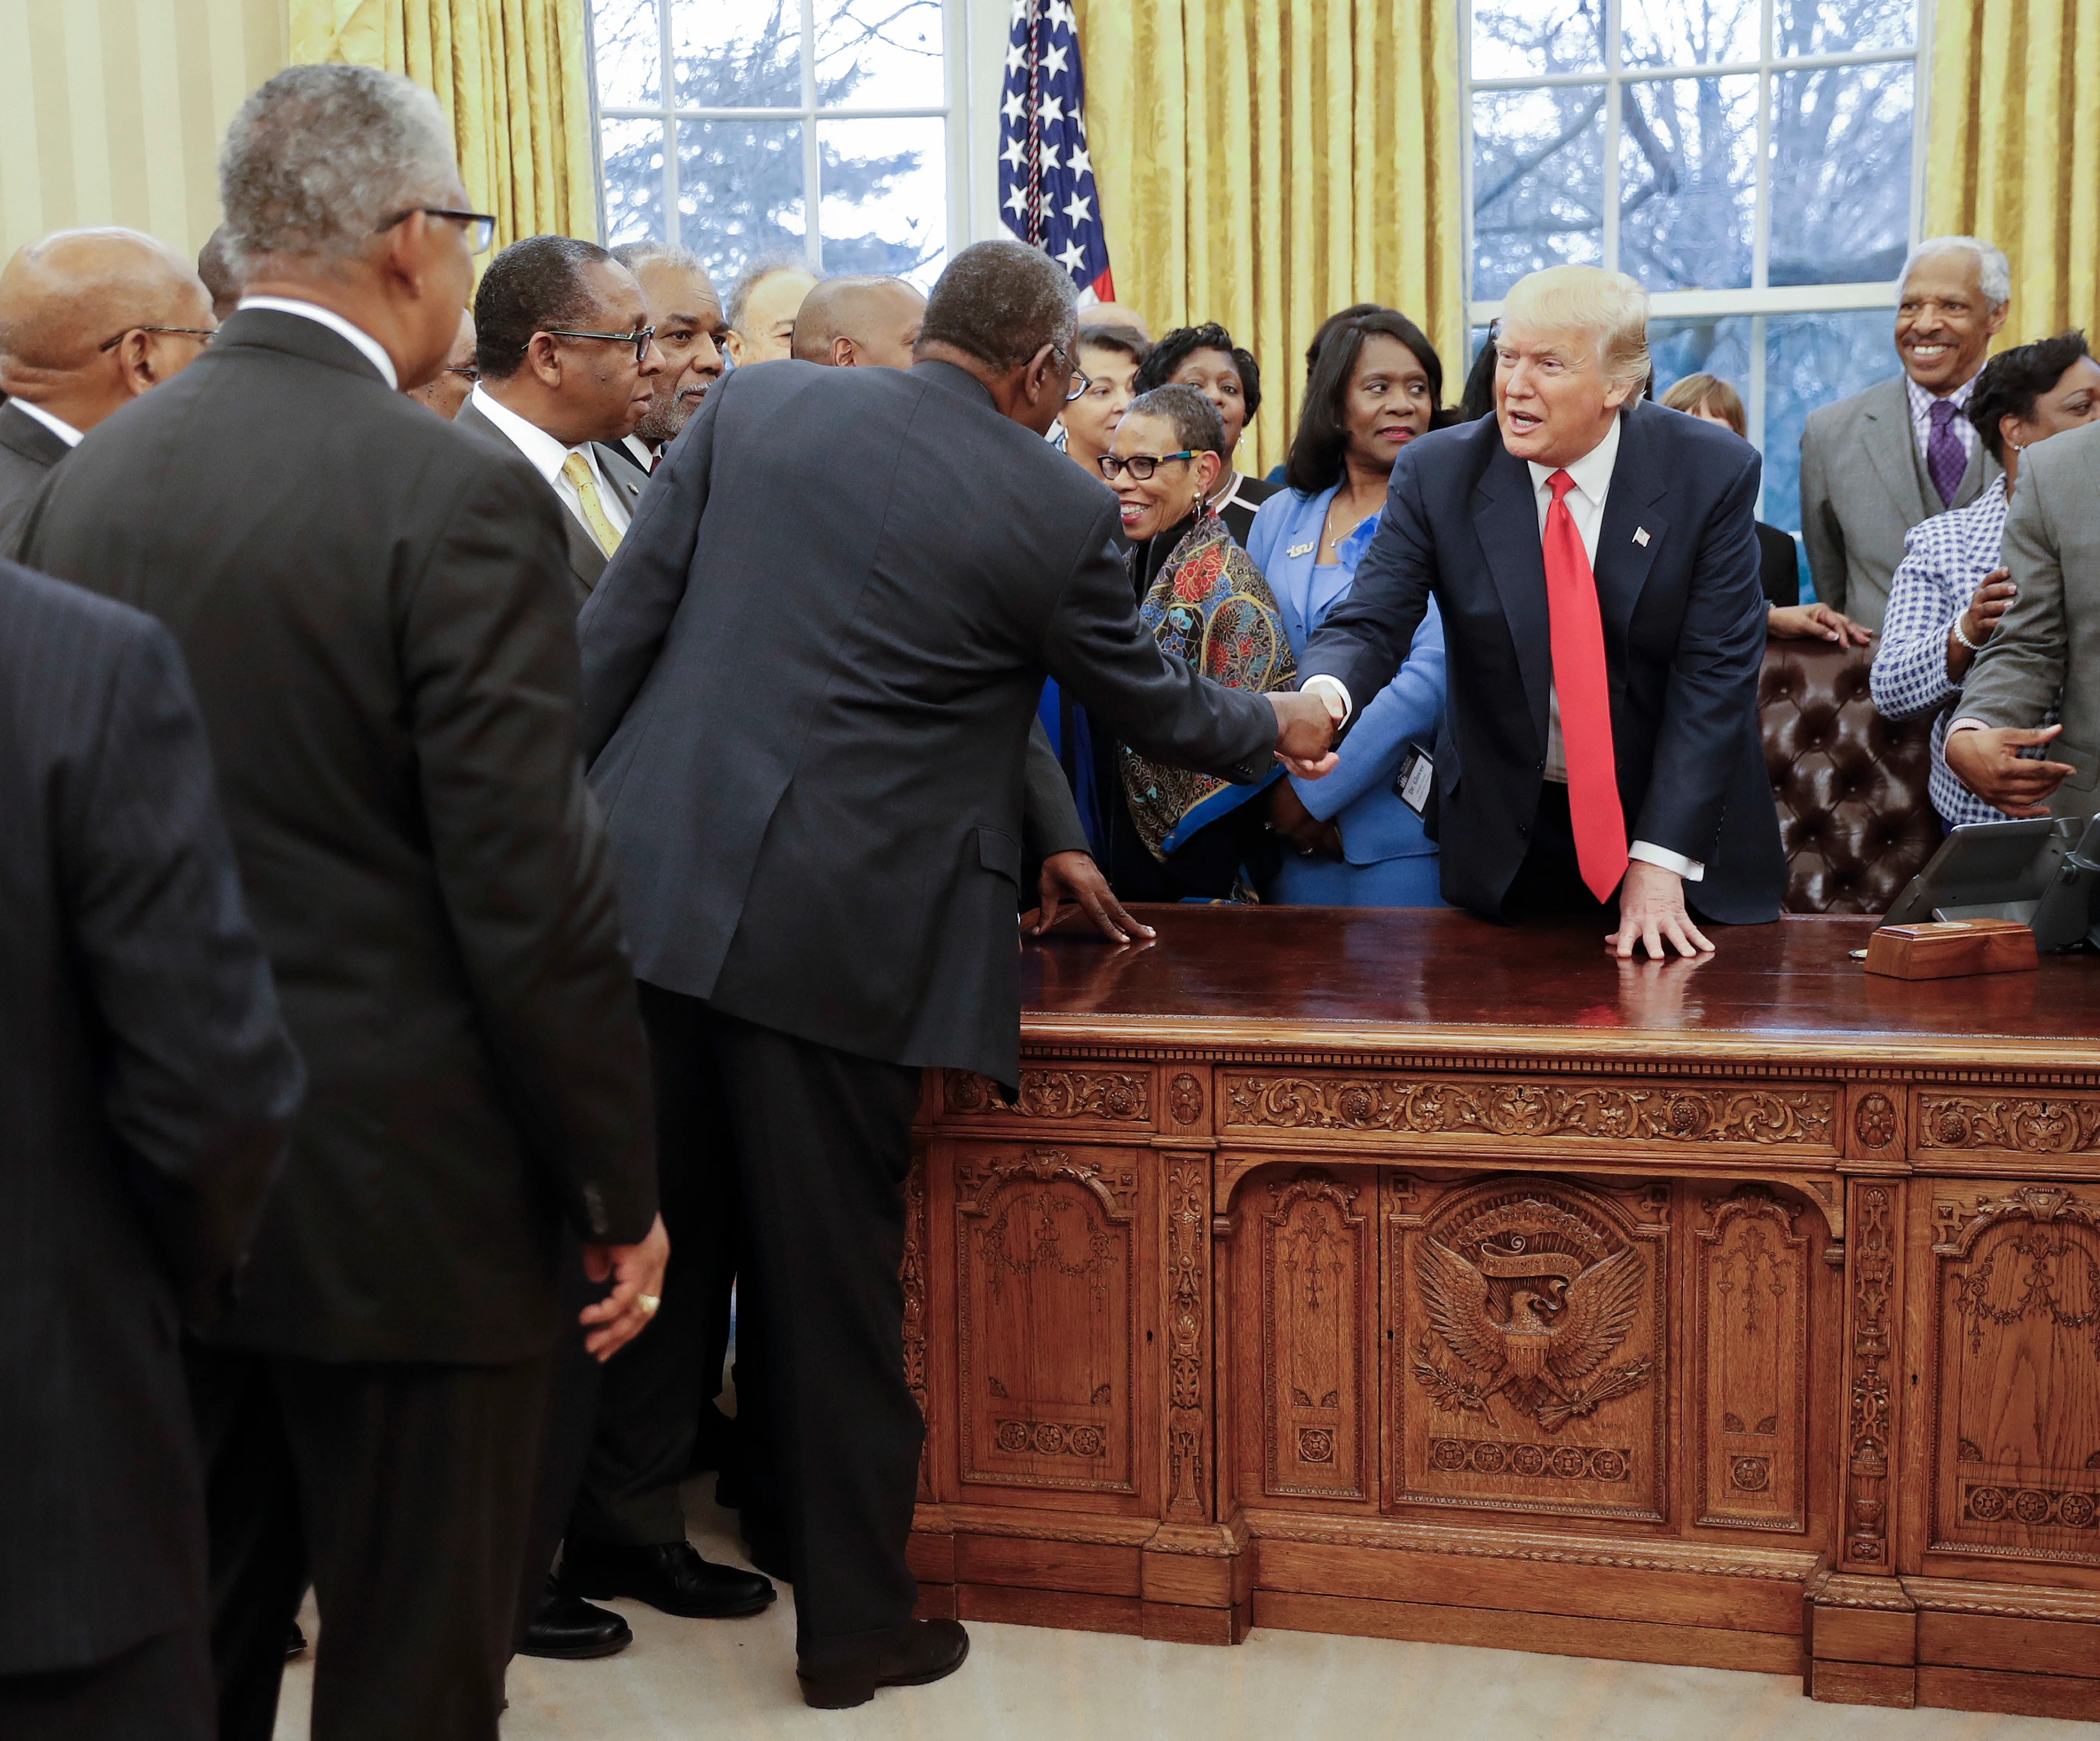 President Donald Trump shakes hands as he meets with leaders of Historically Black Colleges and Universities (HBCU) in the Oval Office of the White House in Washington, Monday, Feb. 27, 2017. (AP Photo/Pablo Martinez Monsivais)